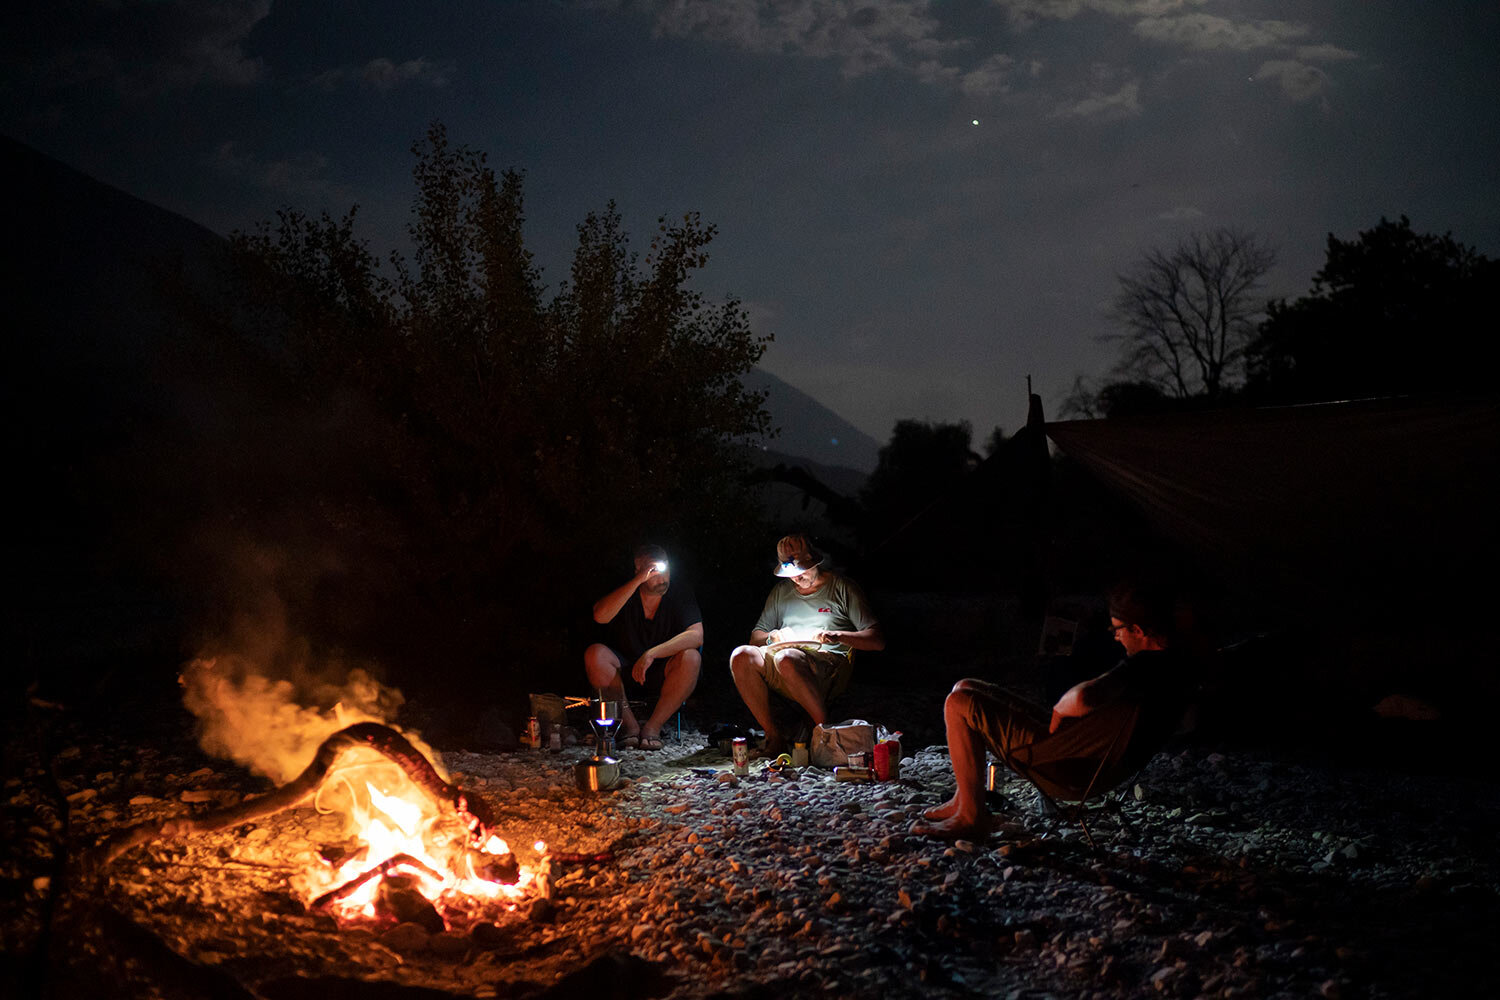 "Jurgen Steinbauer, Benedikt Baumler and Sebastian Baumler, German tourists who are kayaking the length of the Vjosa River, cook a meal as they sit next to a bonfire on the river bank in Albania. After seeing the Kalivac dam construction site, Benedikt Baeumler said, ""It was really unbelievable what they did to nature, removing entire parts of the mountain. I hope this dam is never built."" (AP Photo/Felipe Dana)"